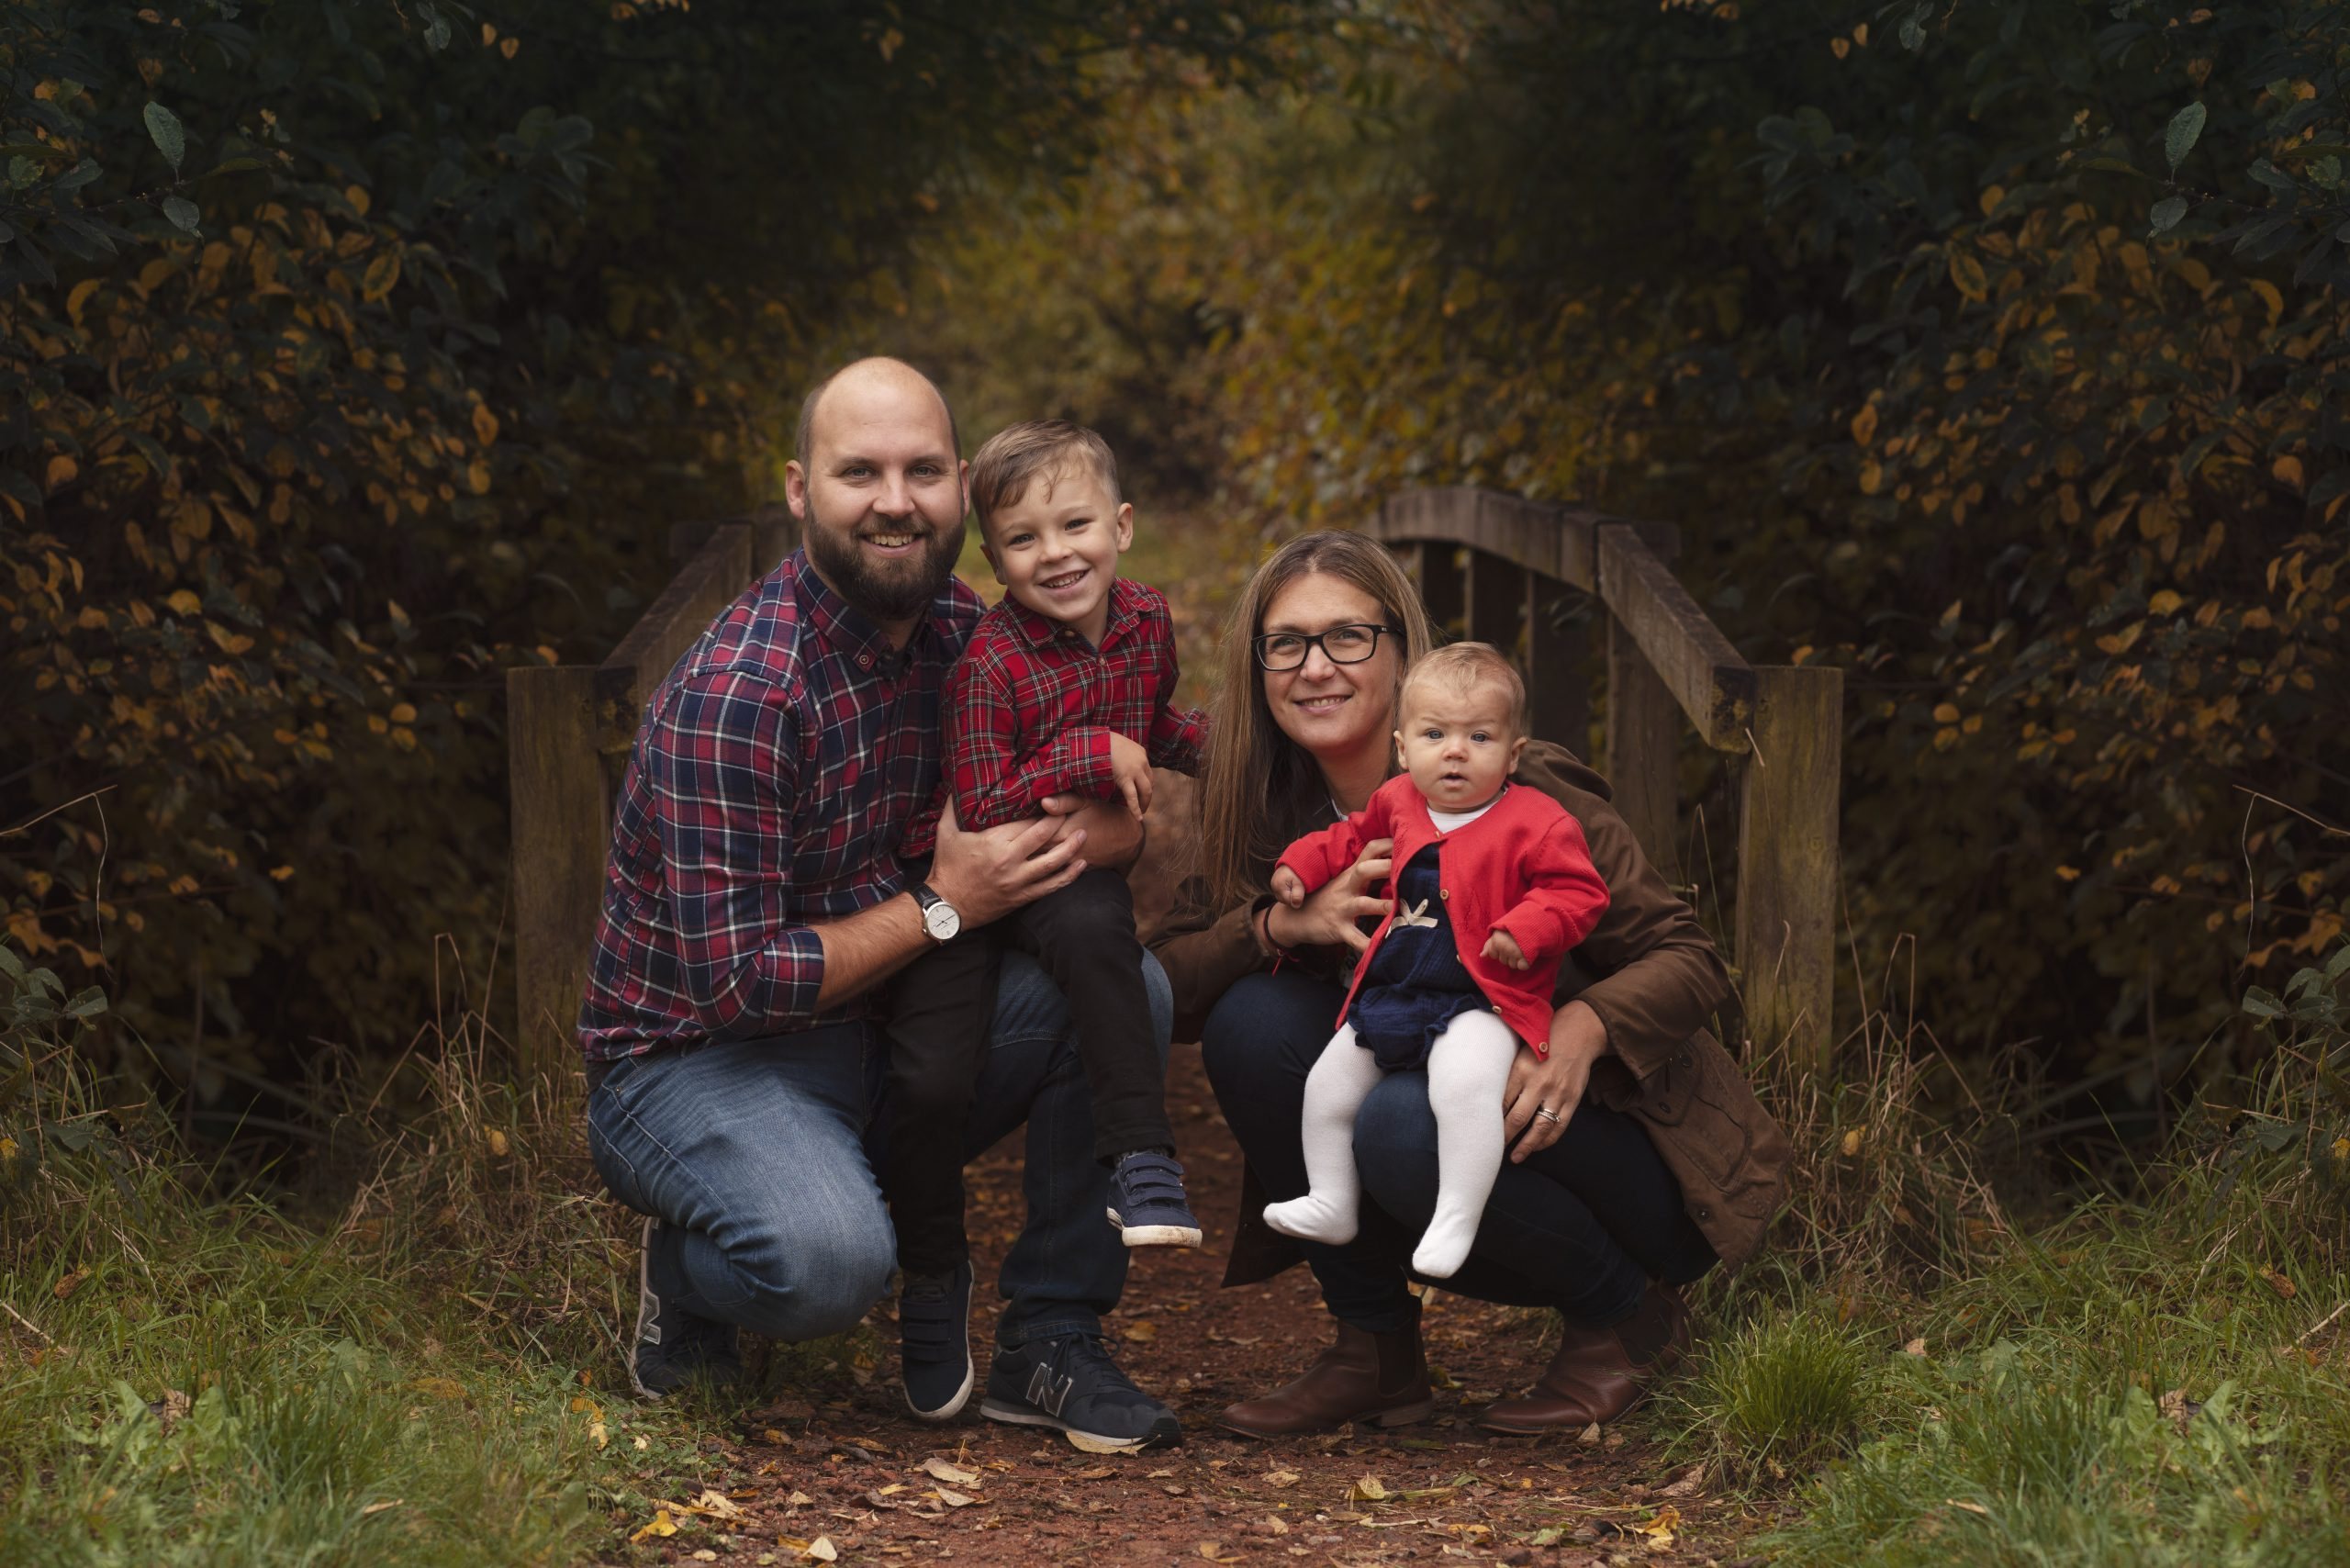 mum and dad posing with children on family photography session in Huntingdon